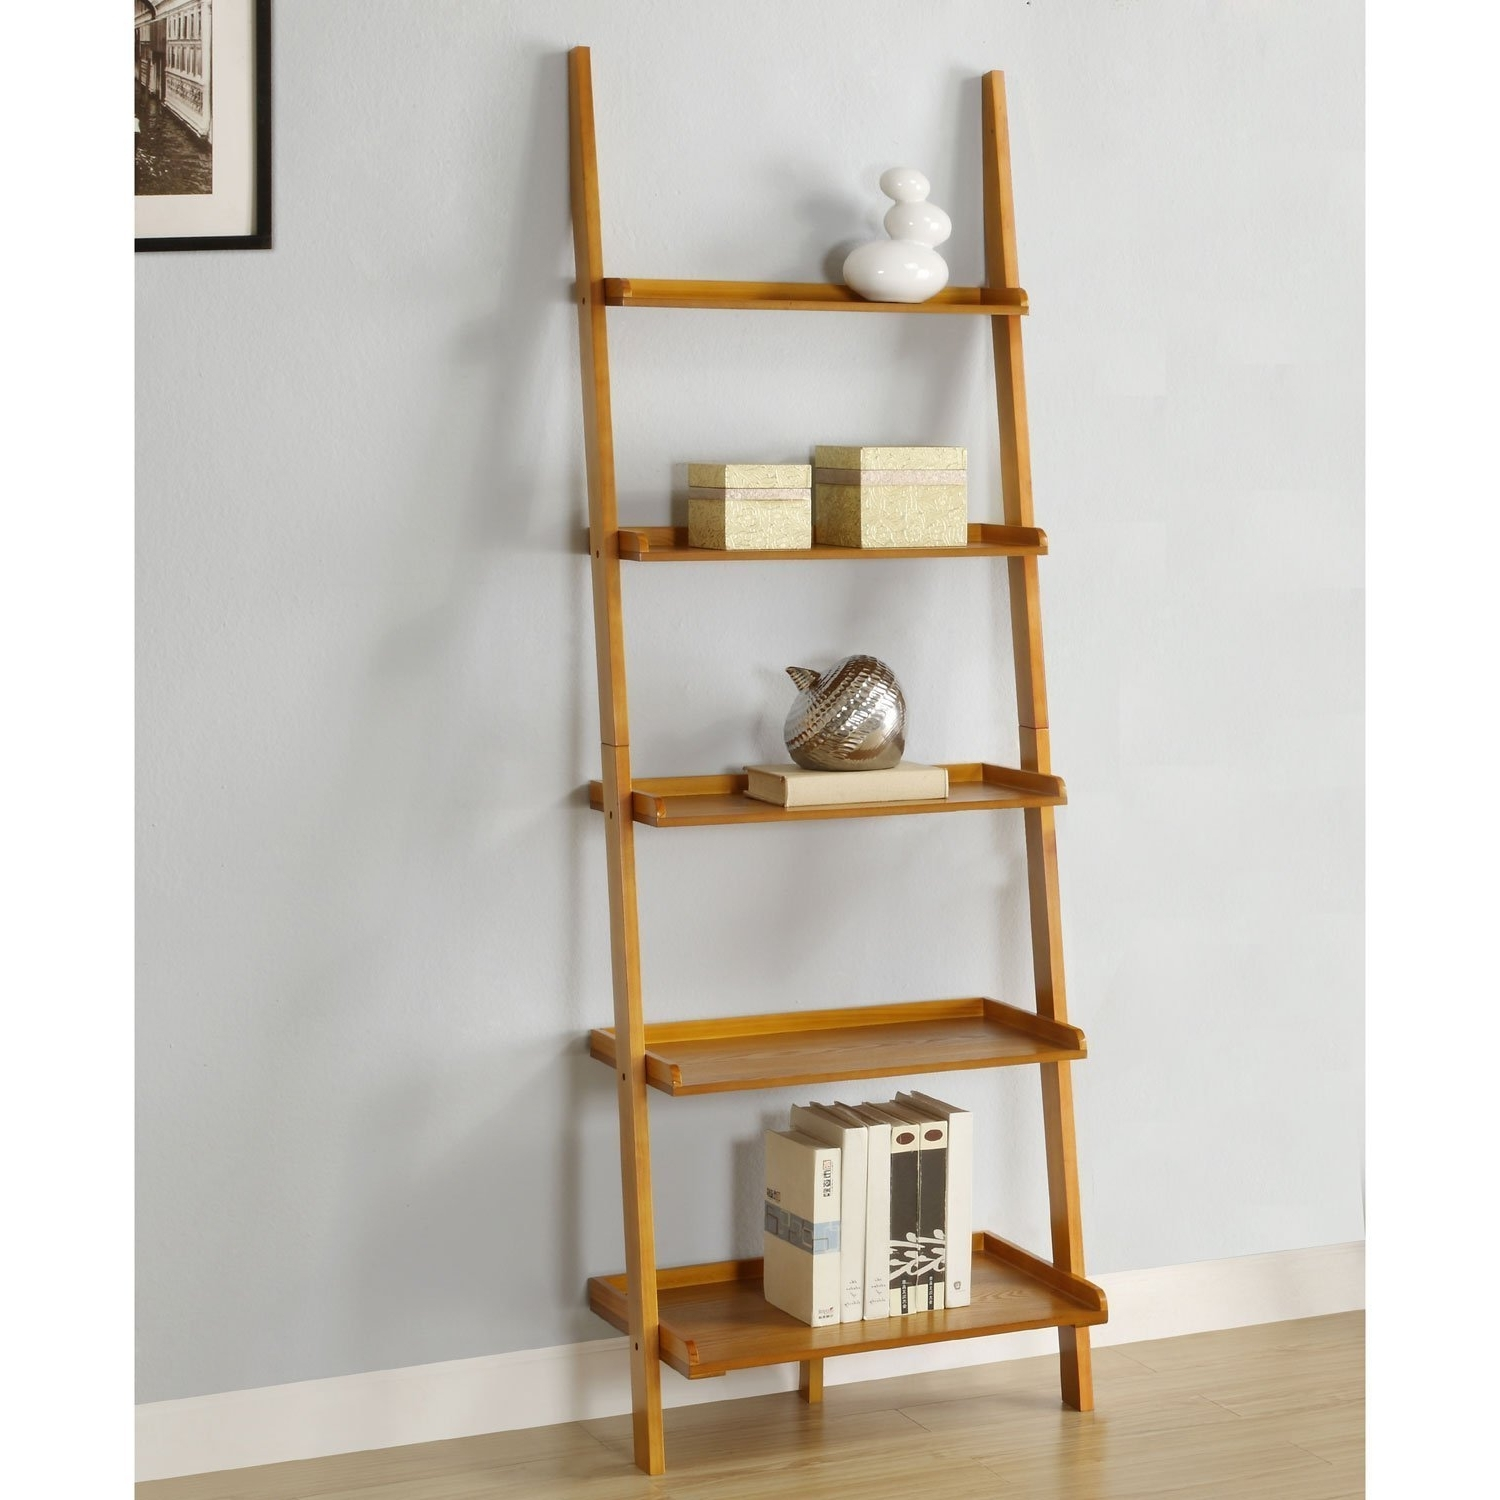 Newest Leaning Shelf Bookcases Within Amazon: Mintra Oak Finish 5 Tier Ladder Book Shelf: Kitchen (View 11 of 15)